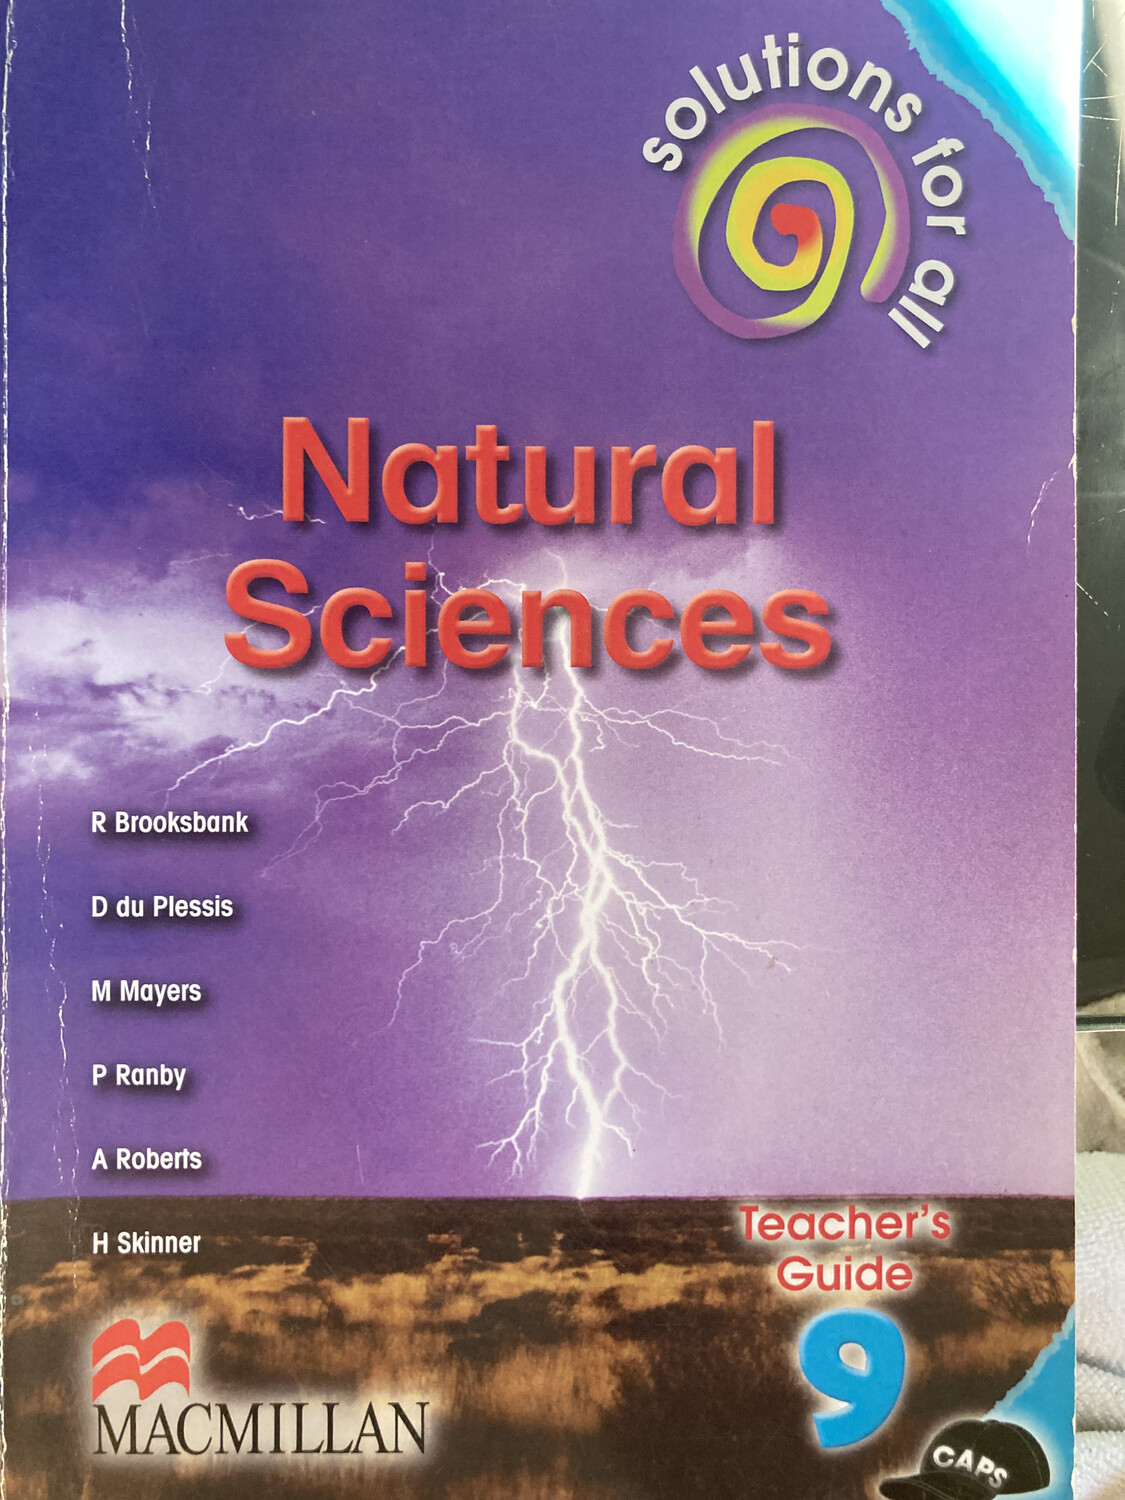 Grade 9 Solutions For All Natural Sciences Teachers Guide